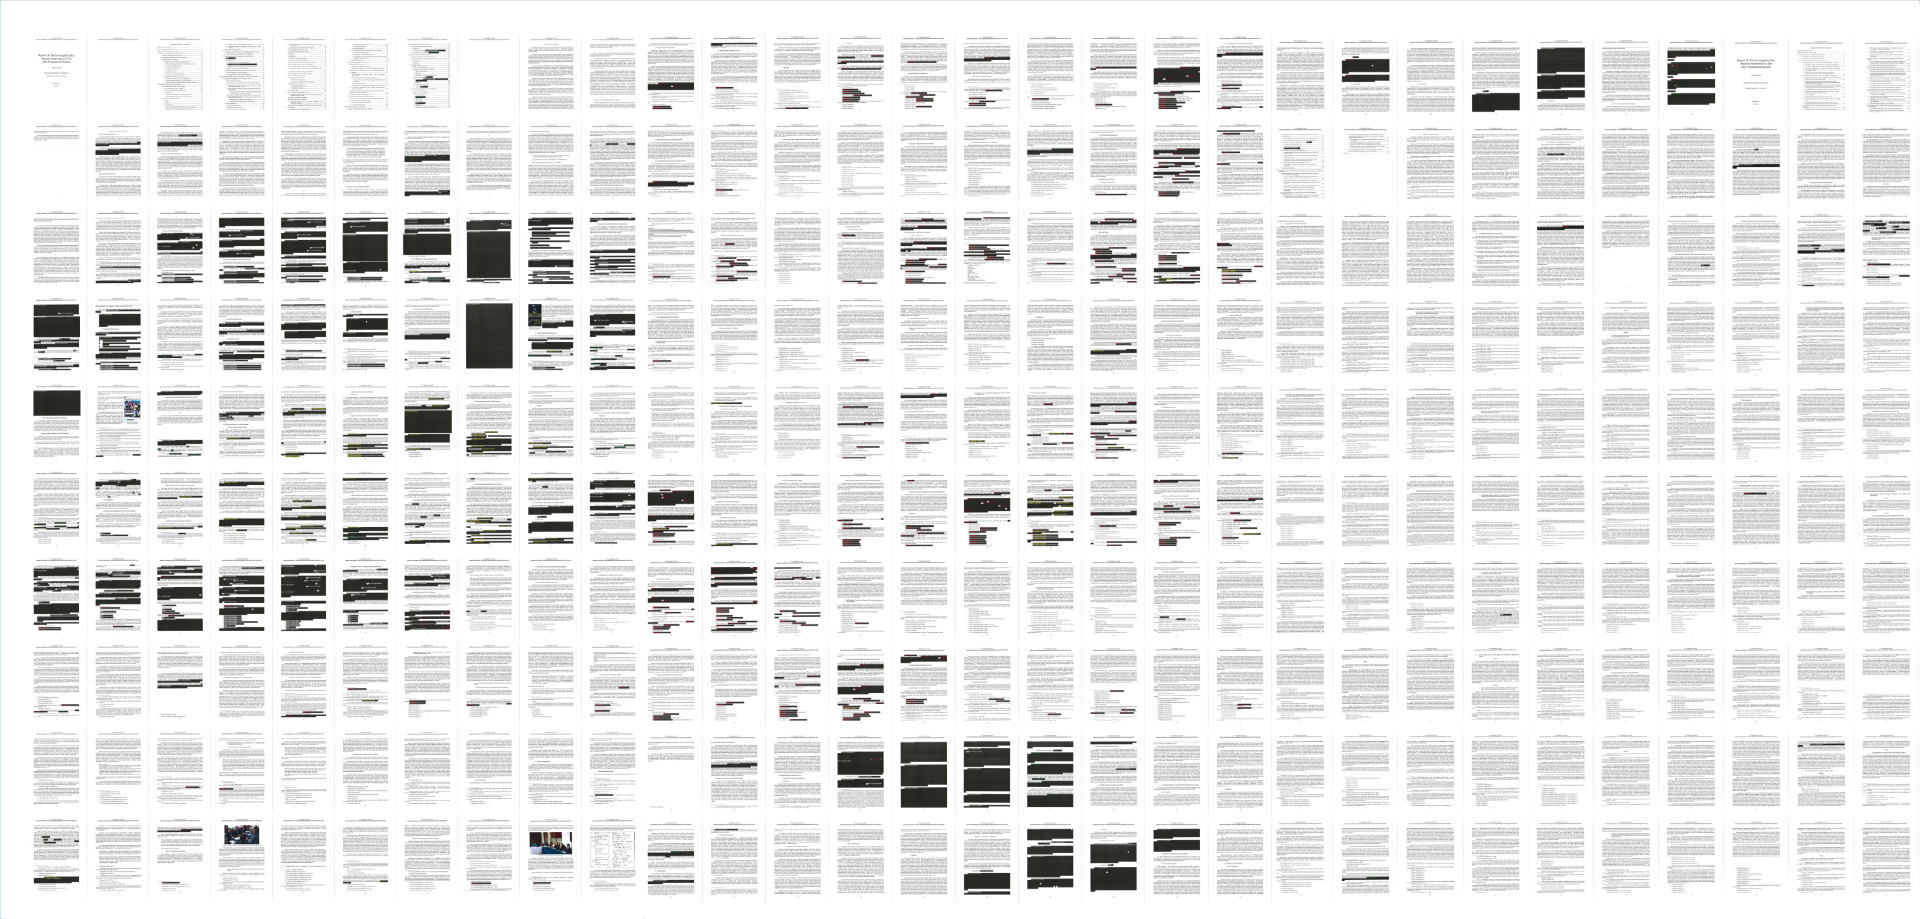 The Mueller report redactions, explained in 4 charts